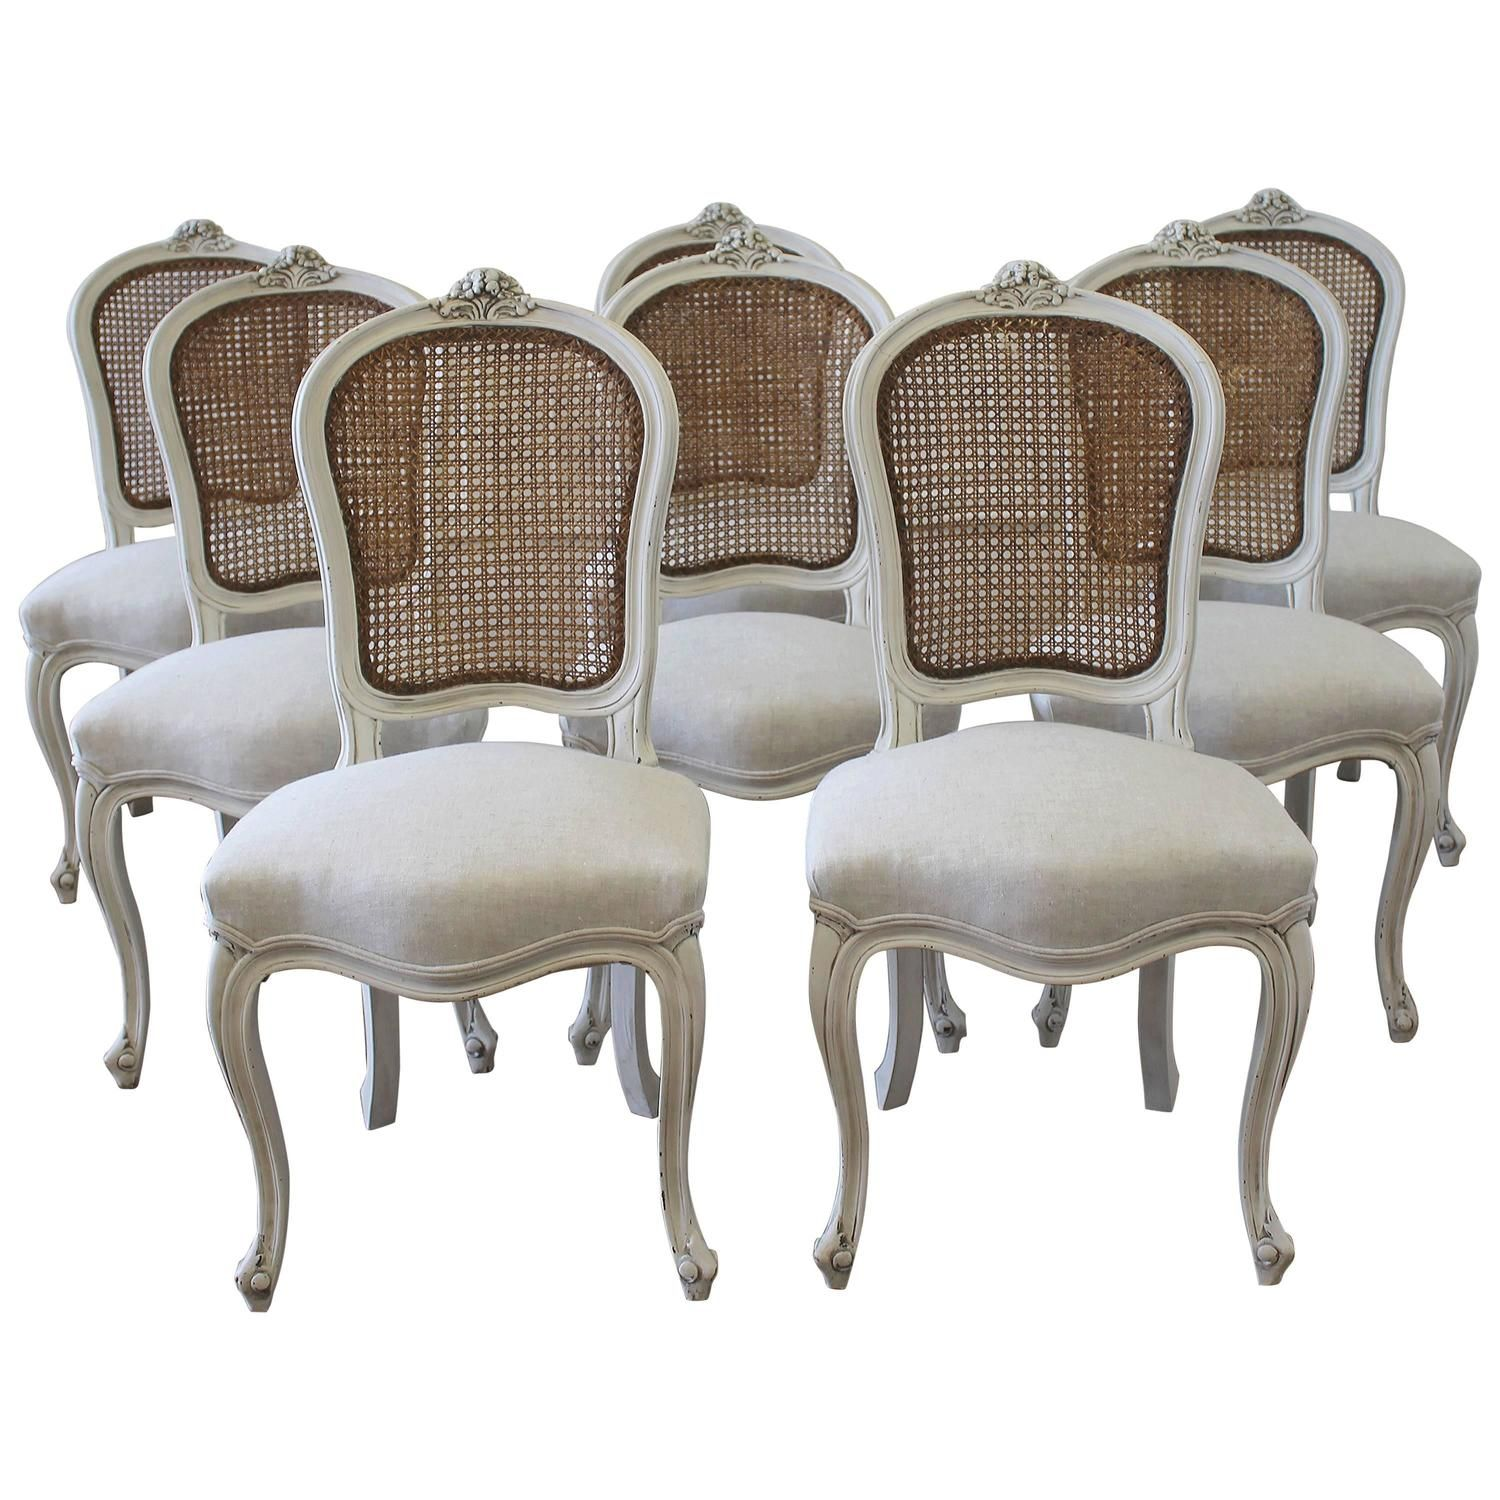 French Dining Chairs Antique French Dining Chairs Dining Room Ideas